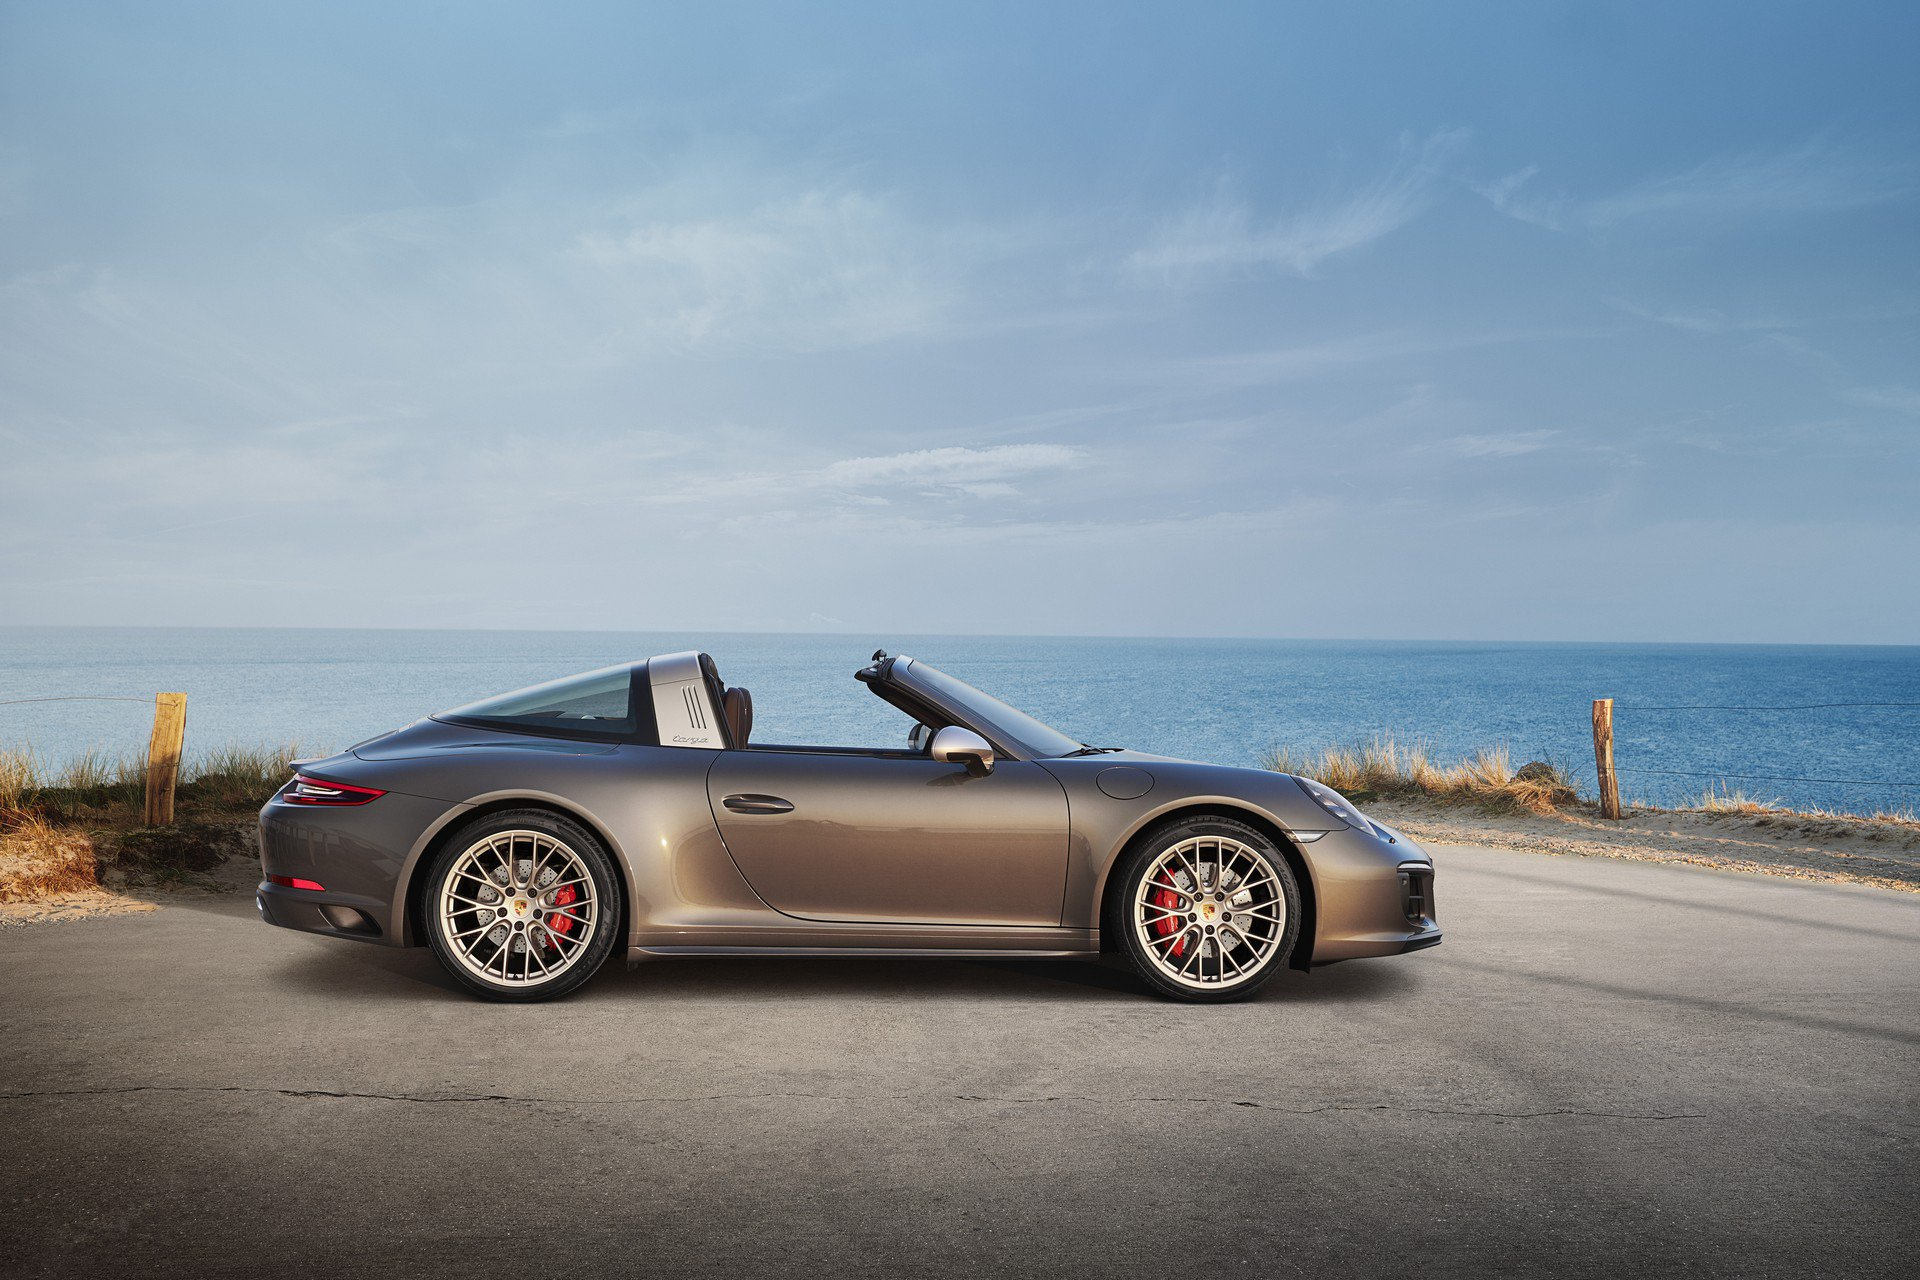 Porsche 911 Targa 4 GTS Exclusive Manufaktur Edition (4)